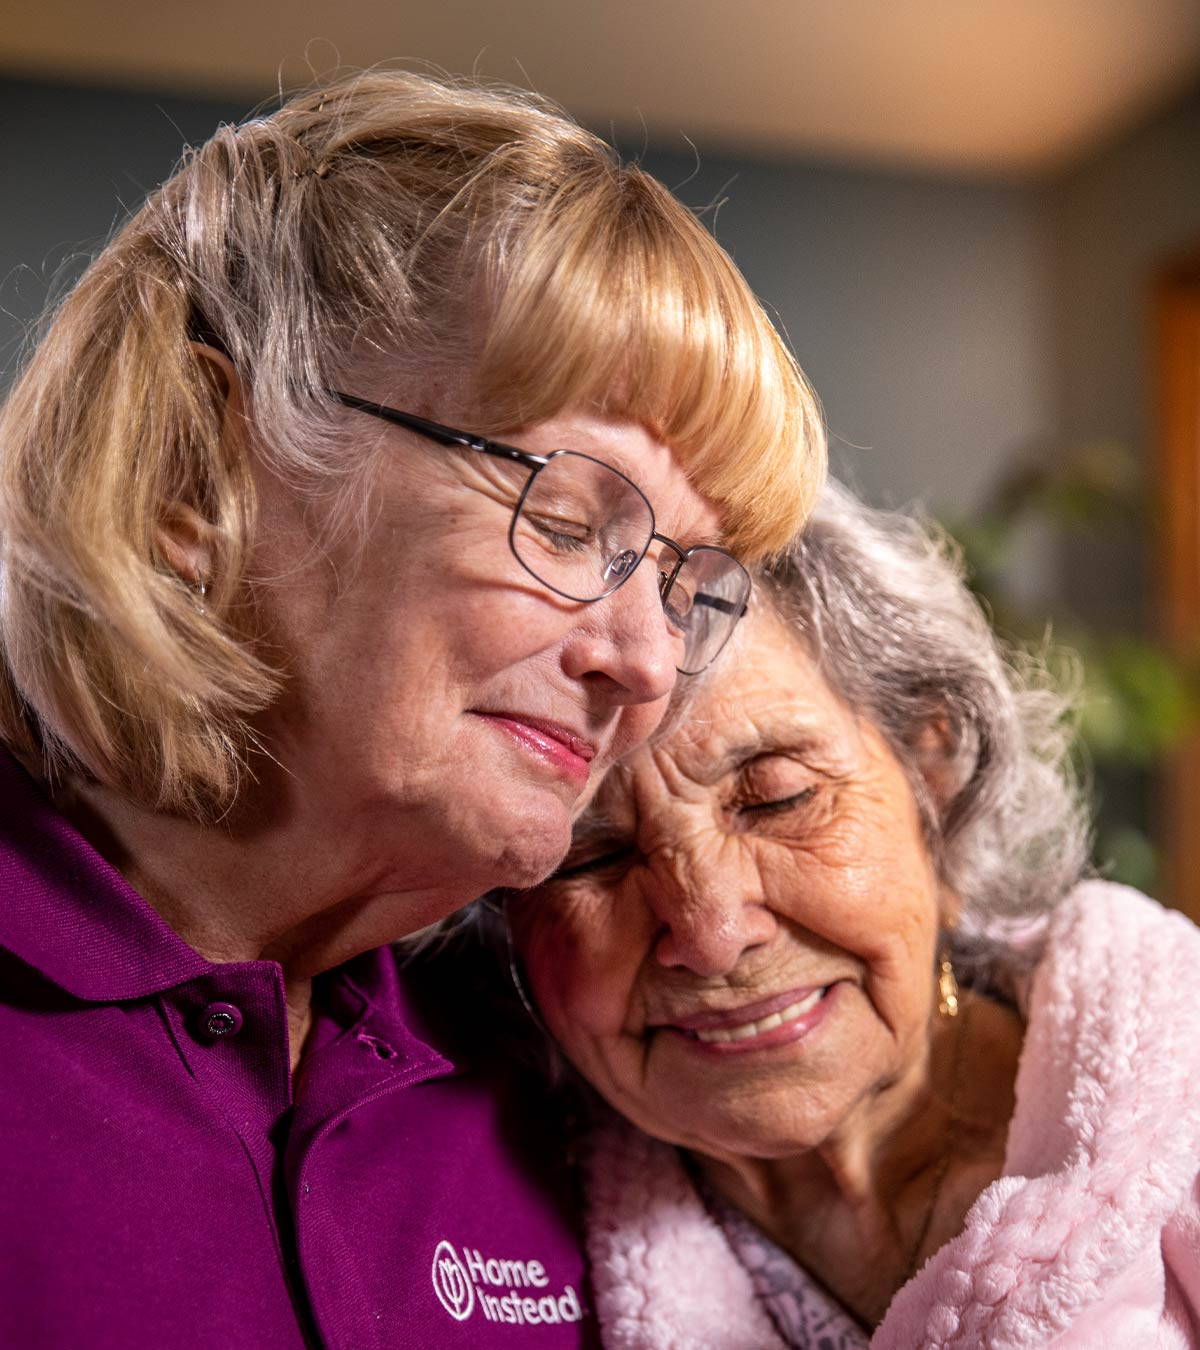 CAREGiver providing in-home senior care services. Home Instead of Oshawa, ON provides Elder Care to aging adults.